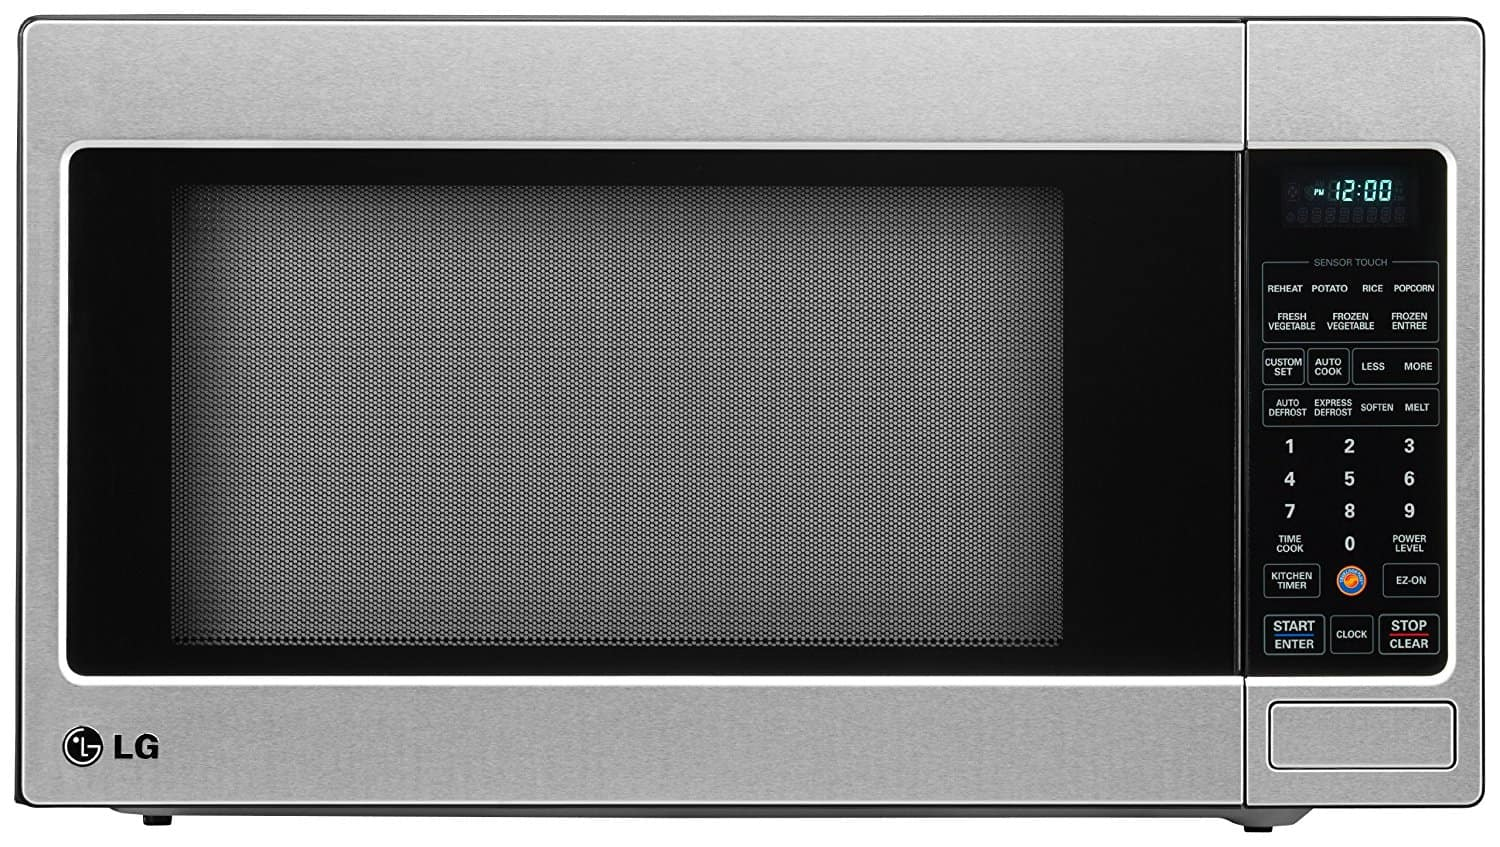 Large stainless microwave oven with counter top and child lock features along with sensor cooking technology.